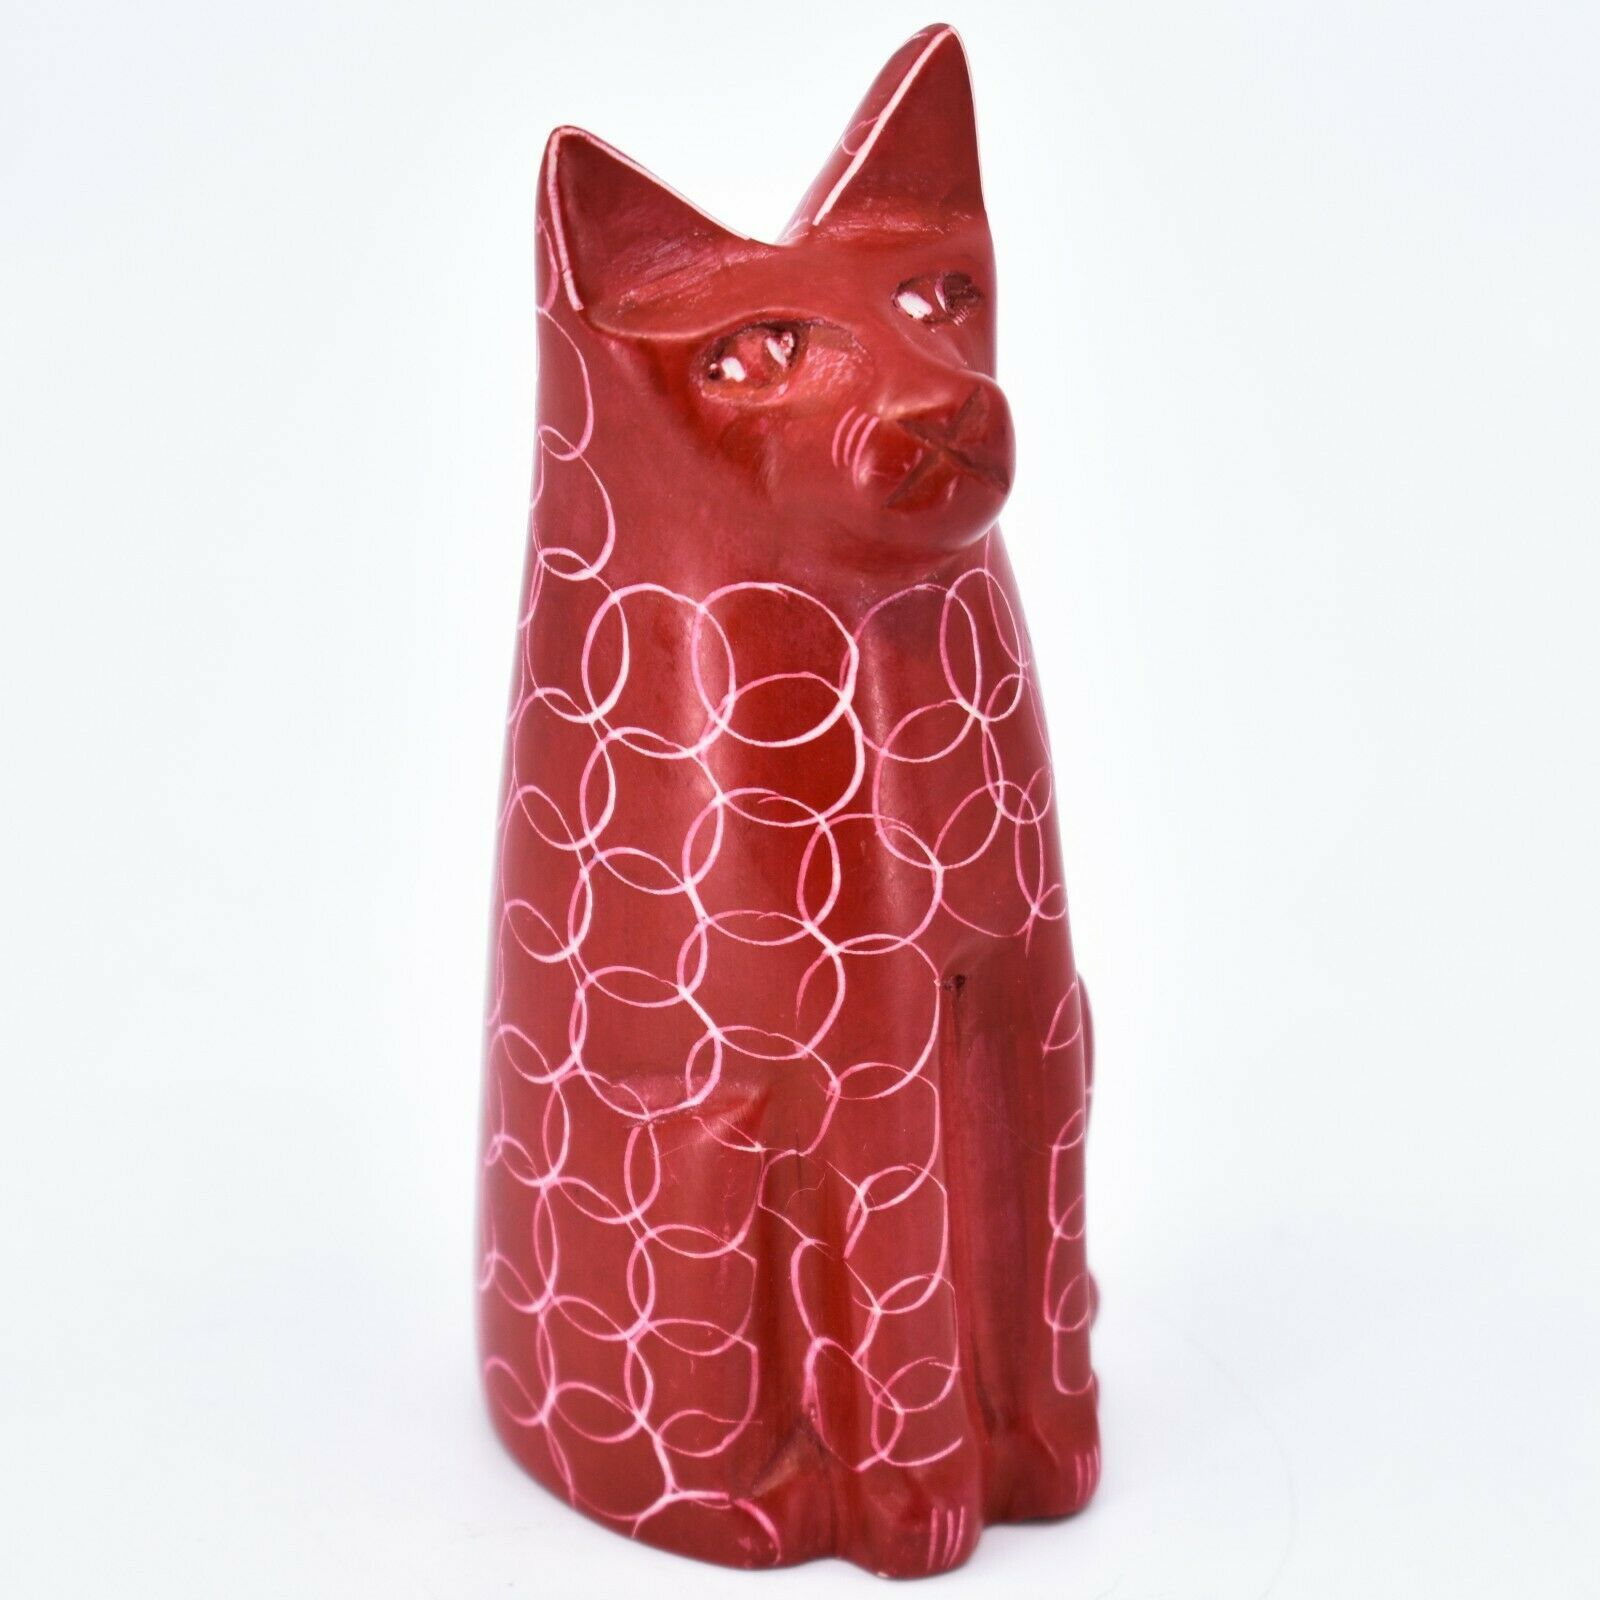 Vaneal Group Hand Carved Kisii Soapstone Red Sitting Kitty Cat Figure Made Kenya